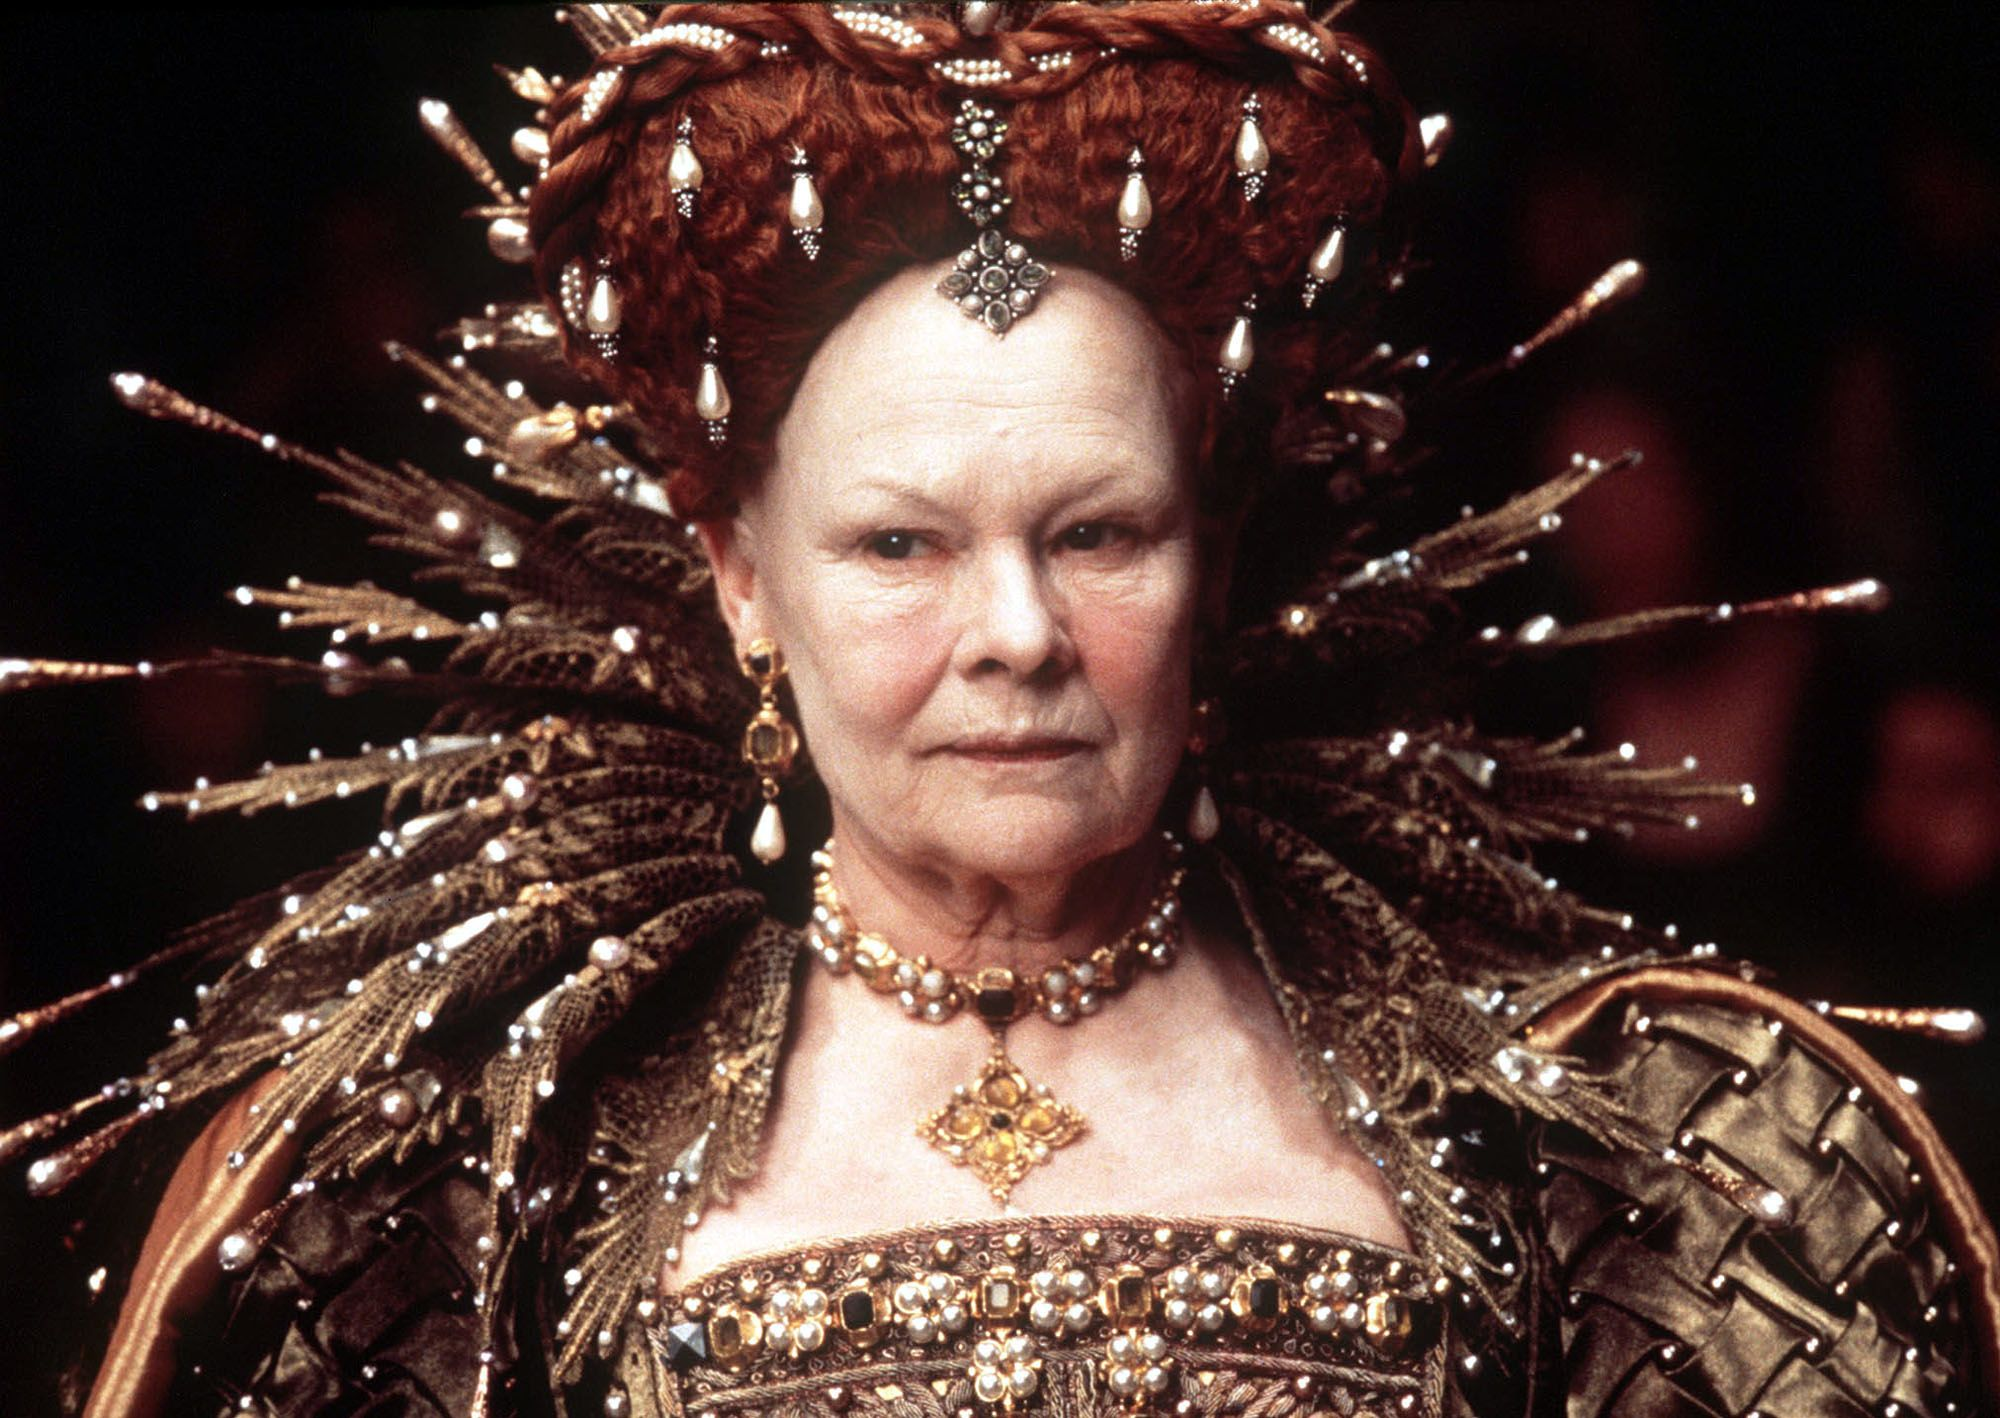 """Judy Dench as Queen Elizabeth I in the 1998 film """"Shakespeare in Love"""" for which she won the Oscar for Best Actress in a Supporting Role 